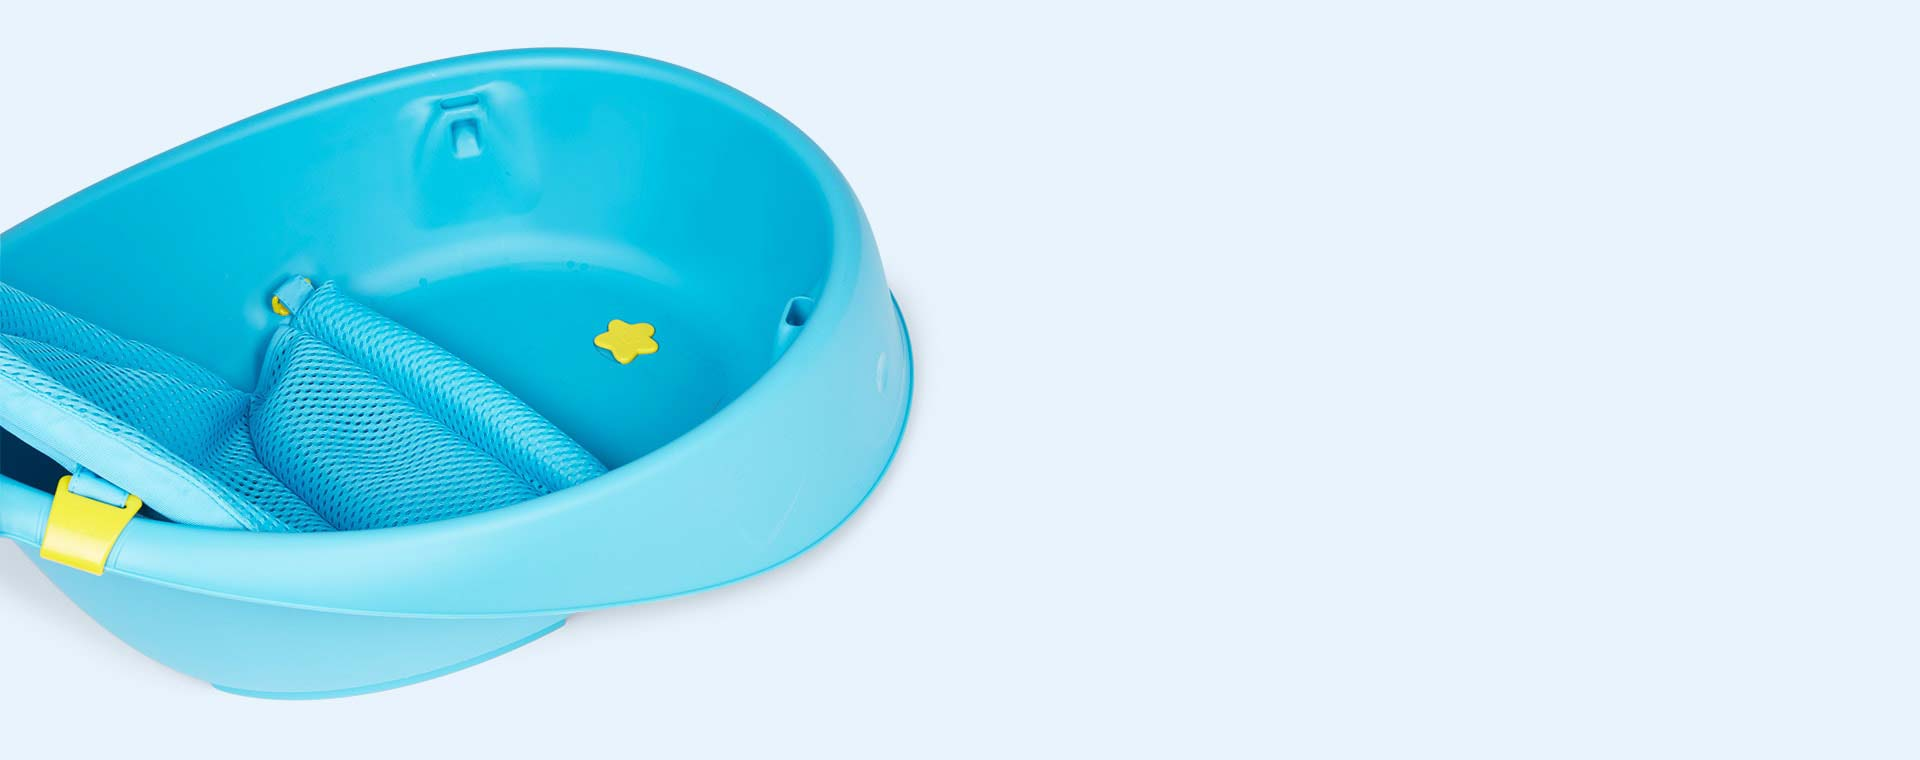 Buy the Skip Hop 3 Stage Moby Baby Bath. Tried & Tested by KIDLY Parents